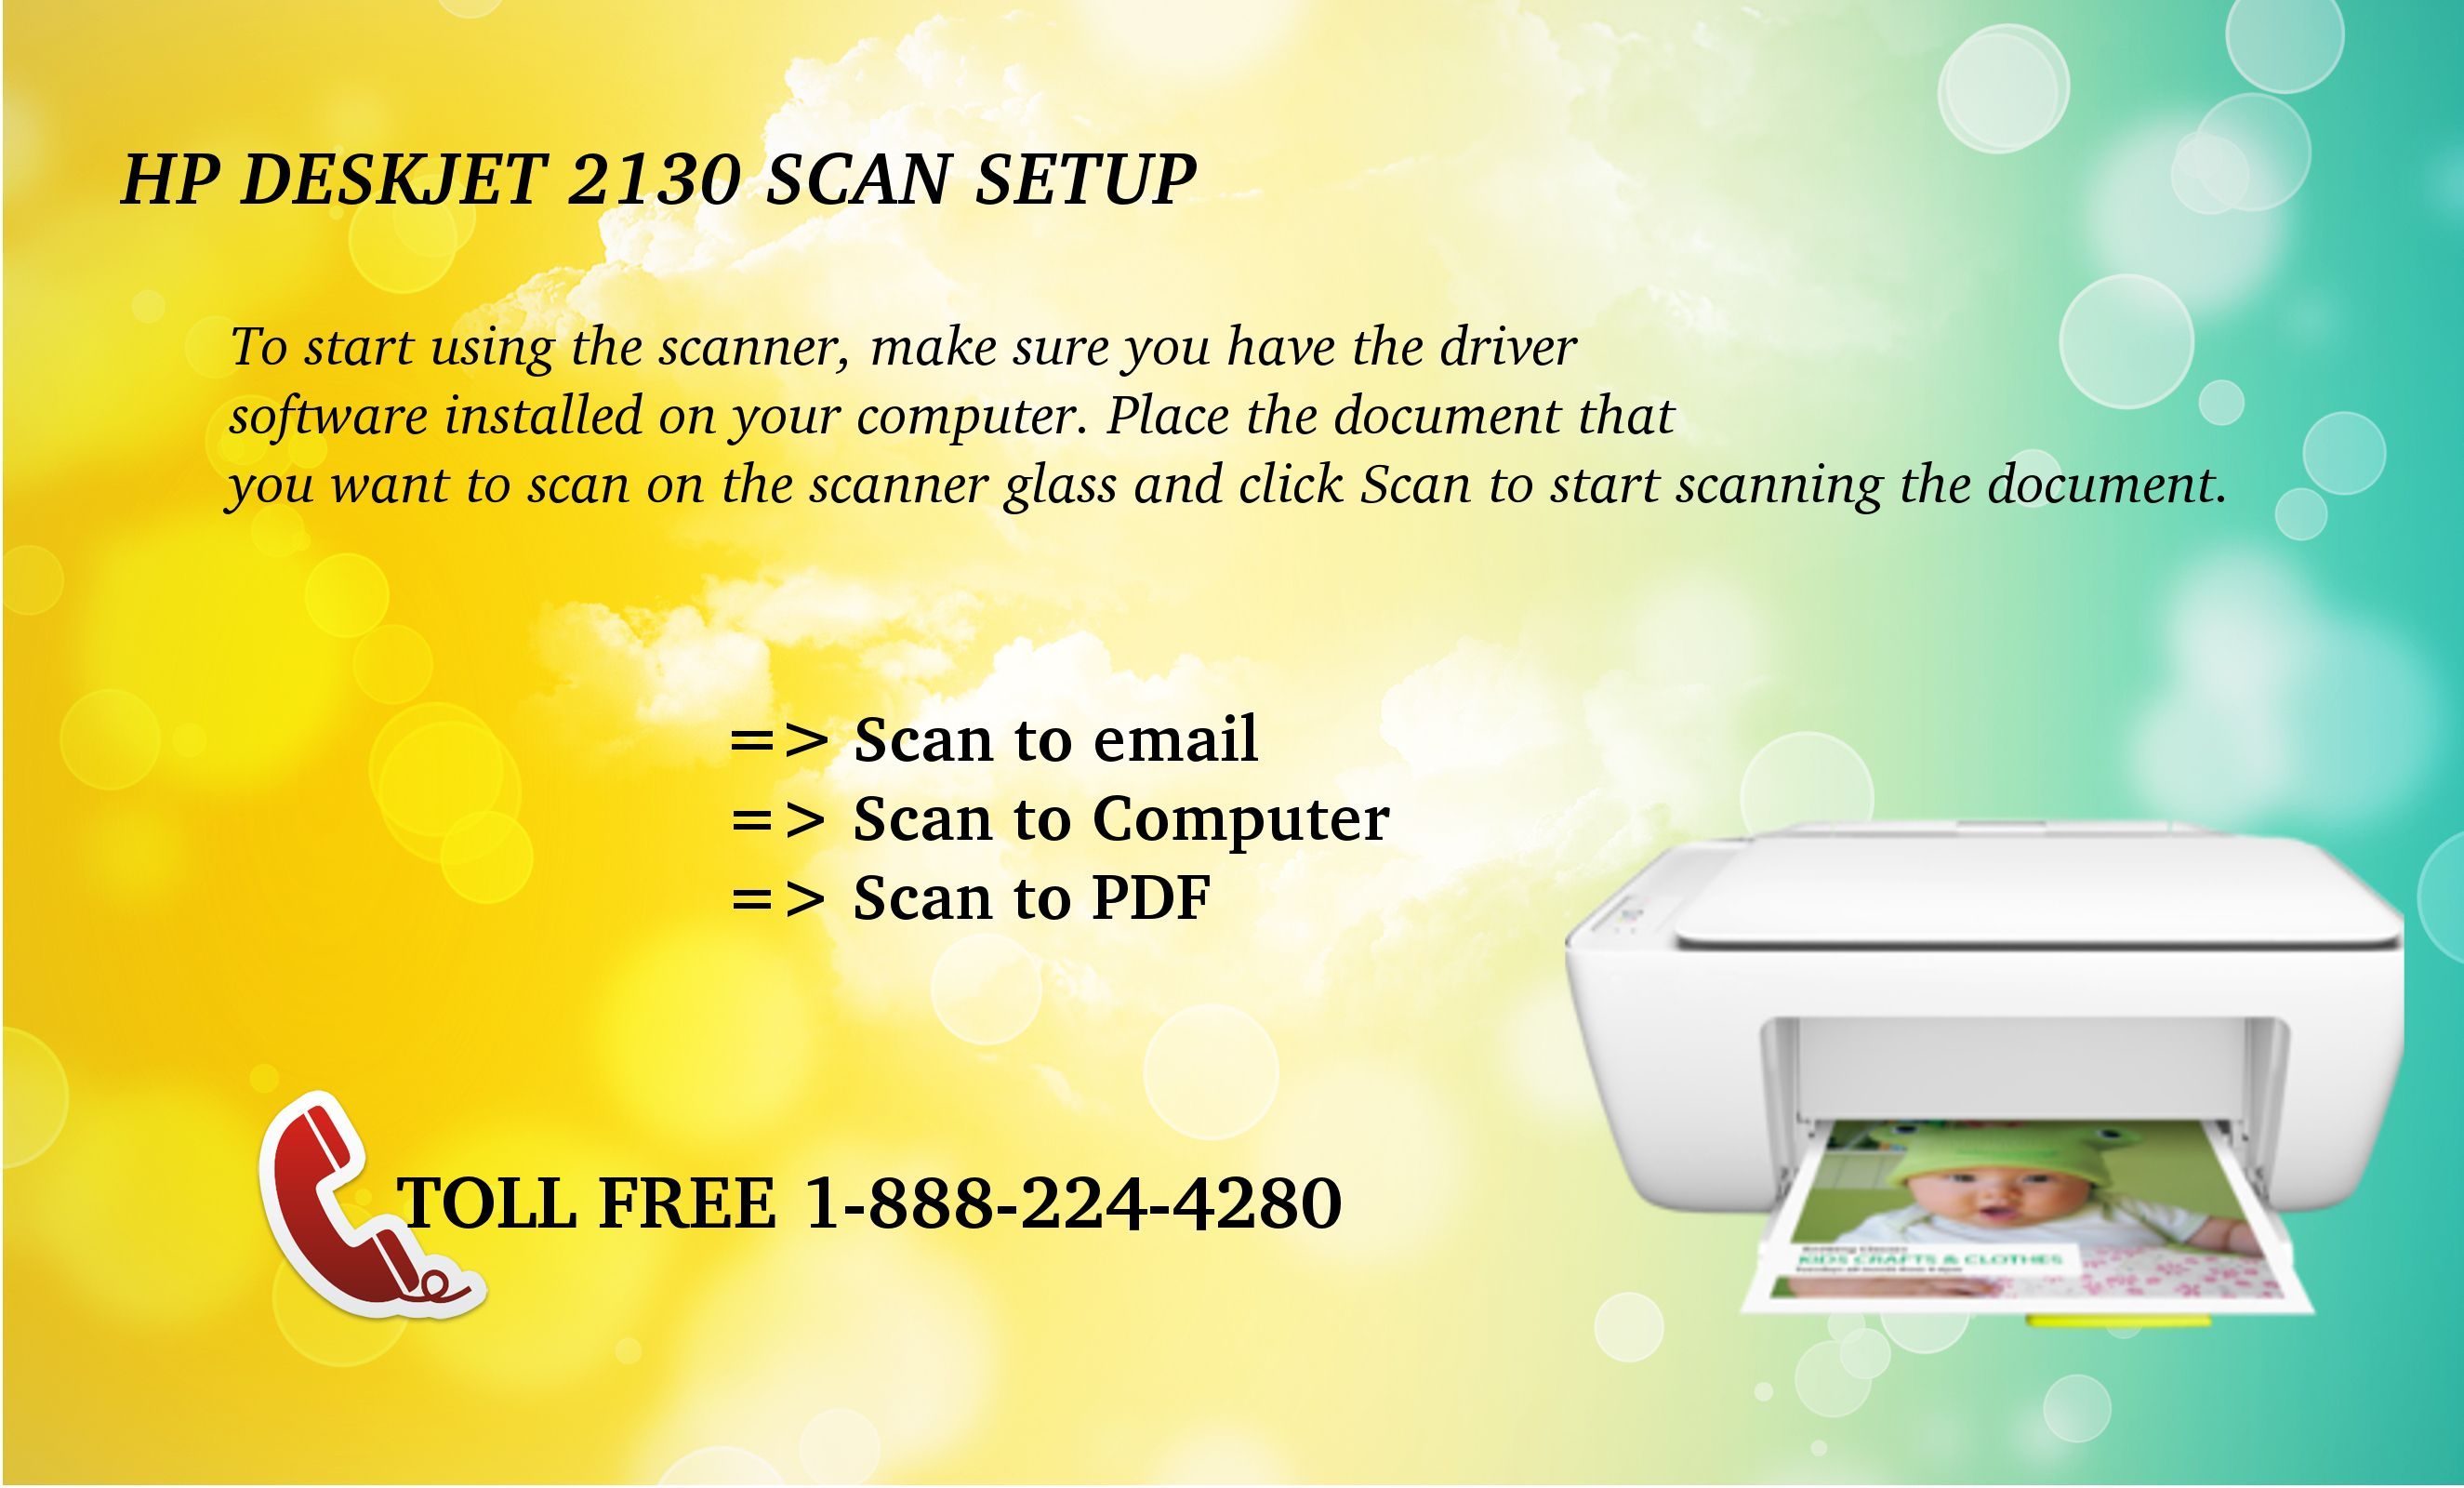 HP Deskjet 2130 Scan | HP Deskjet Printer | Printer, Mac, Windows